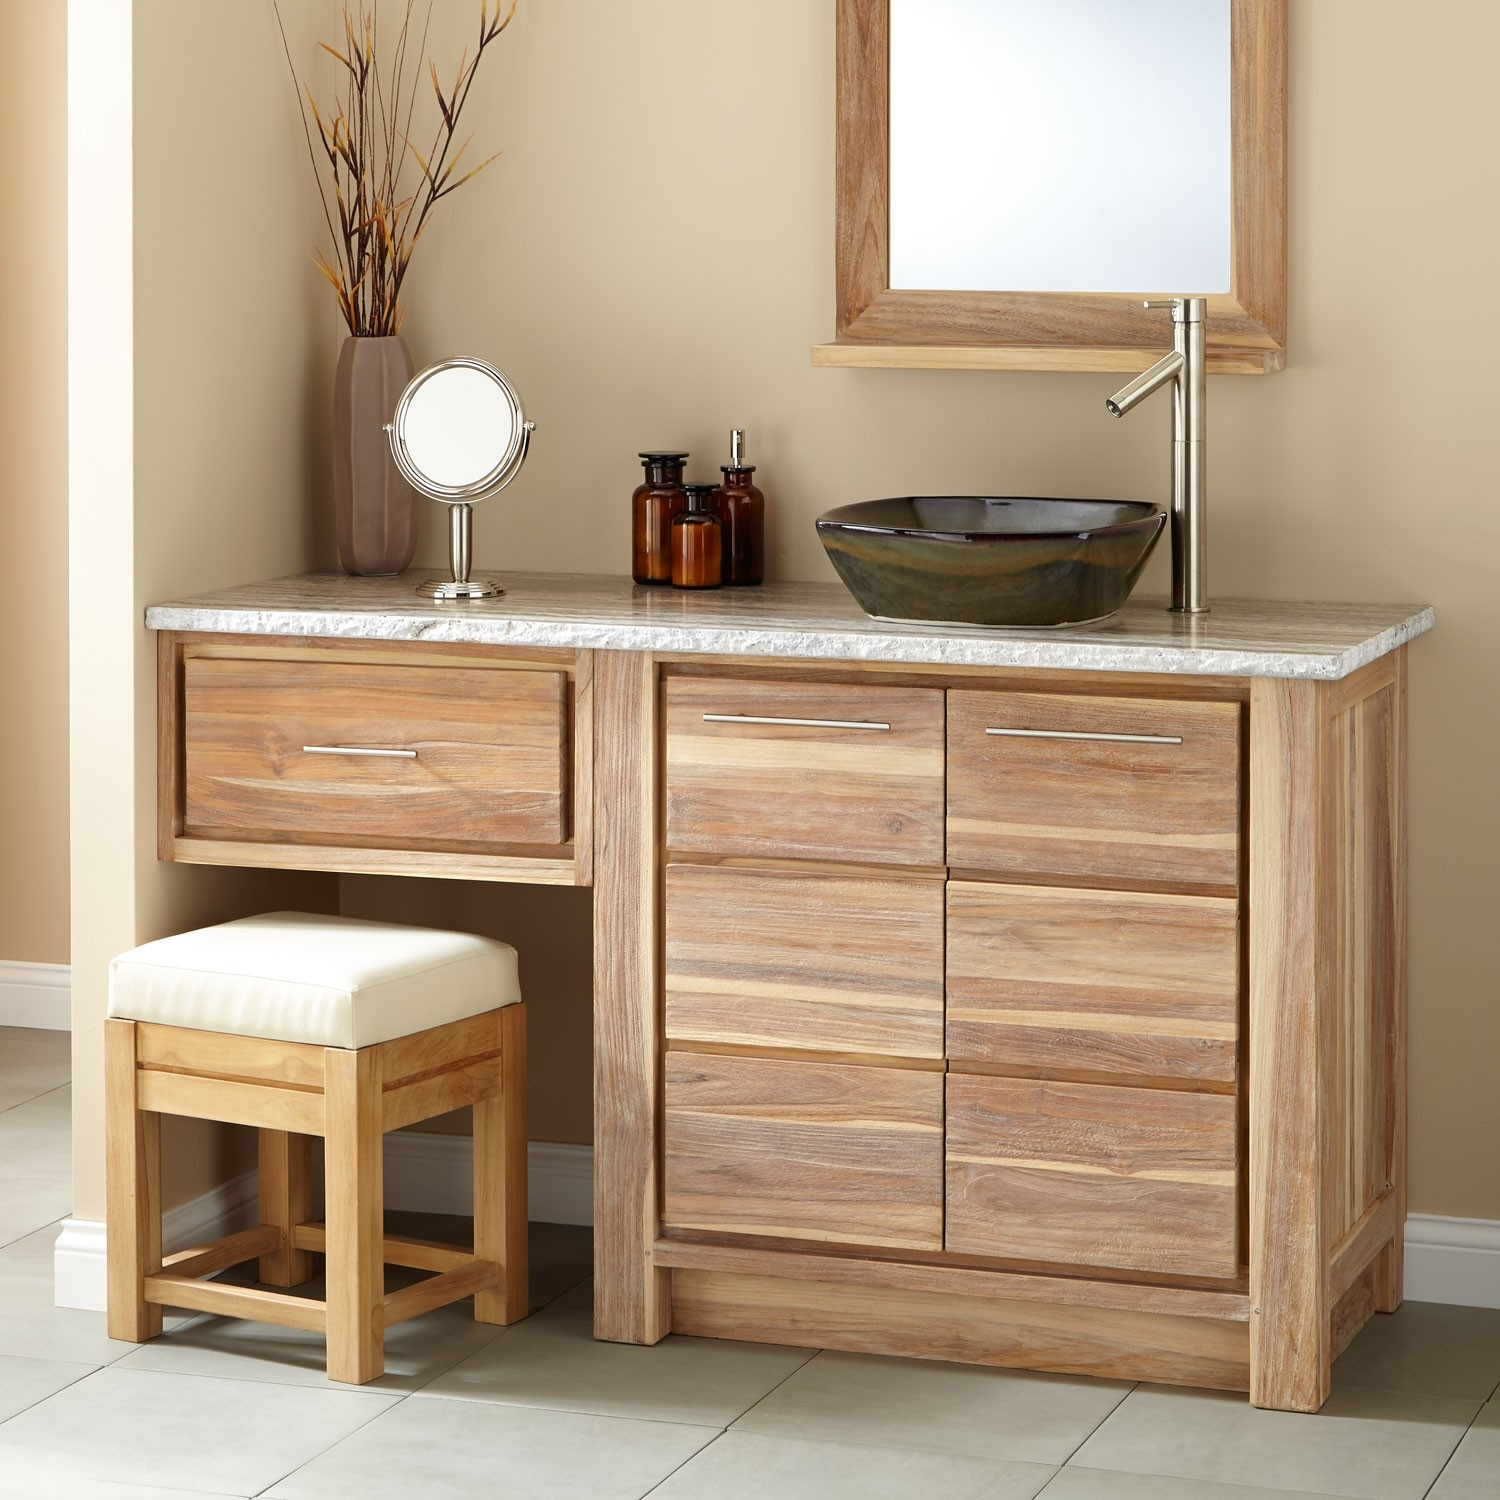 Bathroom Sink Vanity With Makeup Area